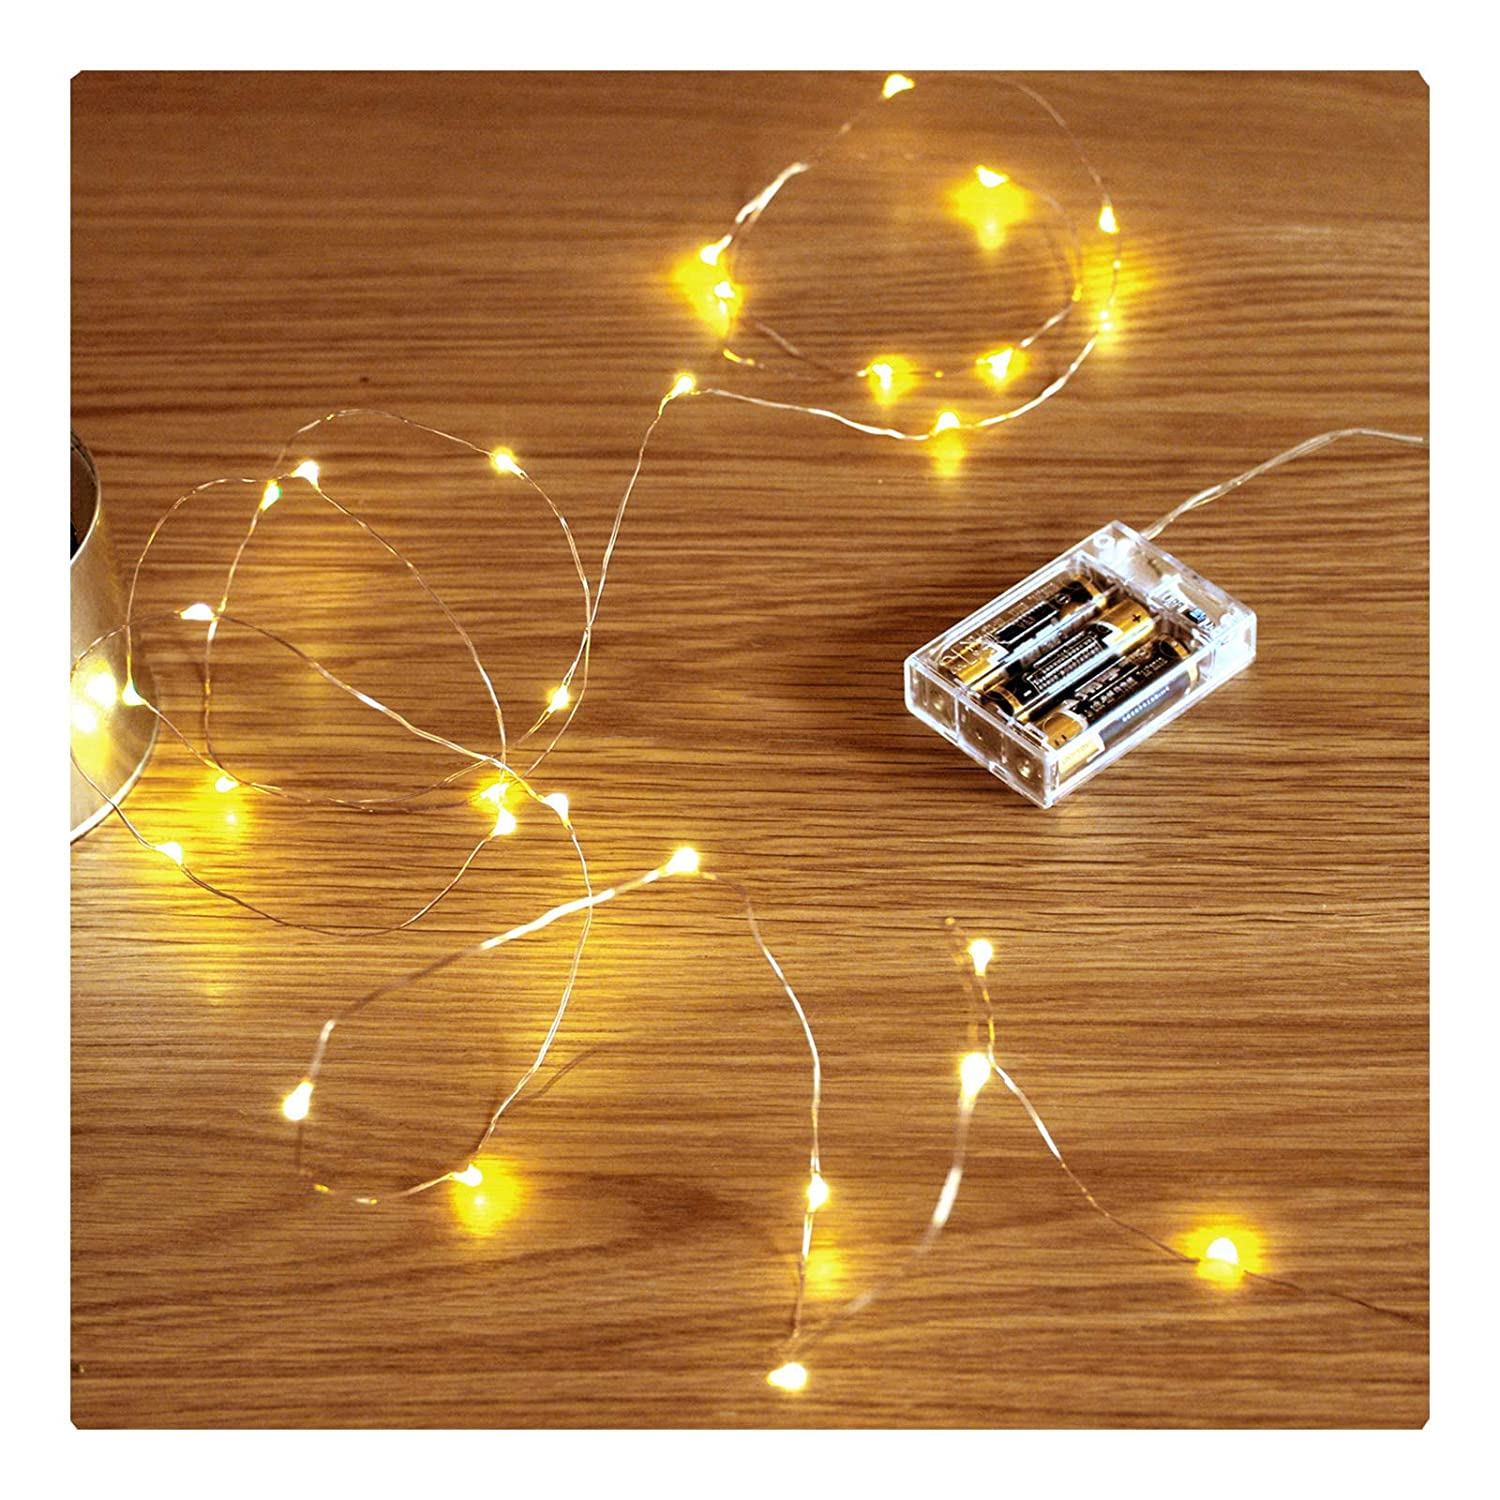 Led String Lights,FairyDecor 2 Sets 2M/7.2ft Starry Fairy Copper Wire Battery Operated String Lights,Led String Lights for Kids Girls Bedroom/Garden Decoration(2 Packs)